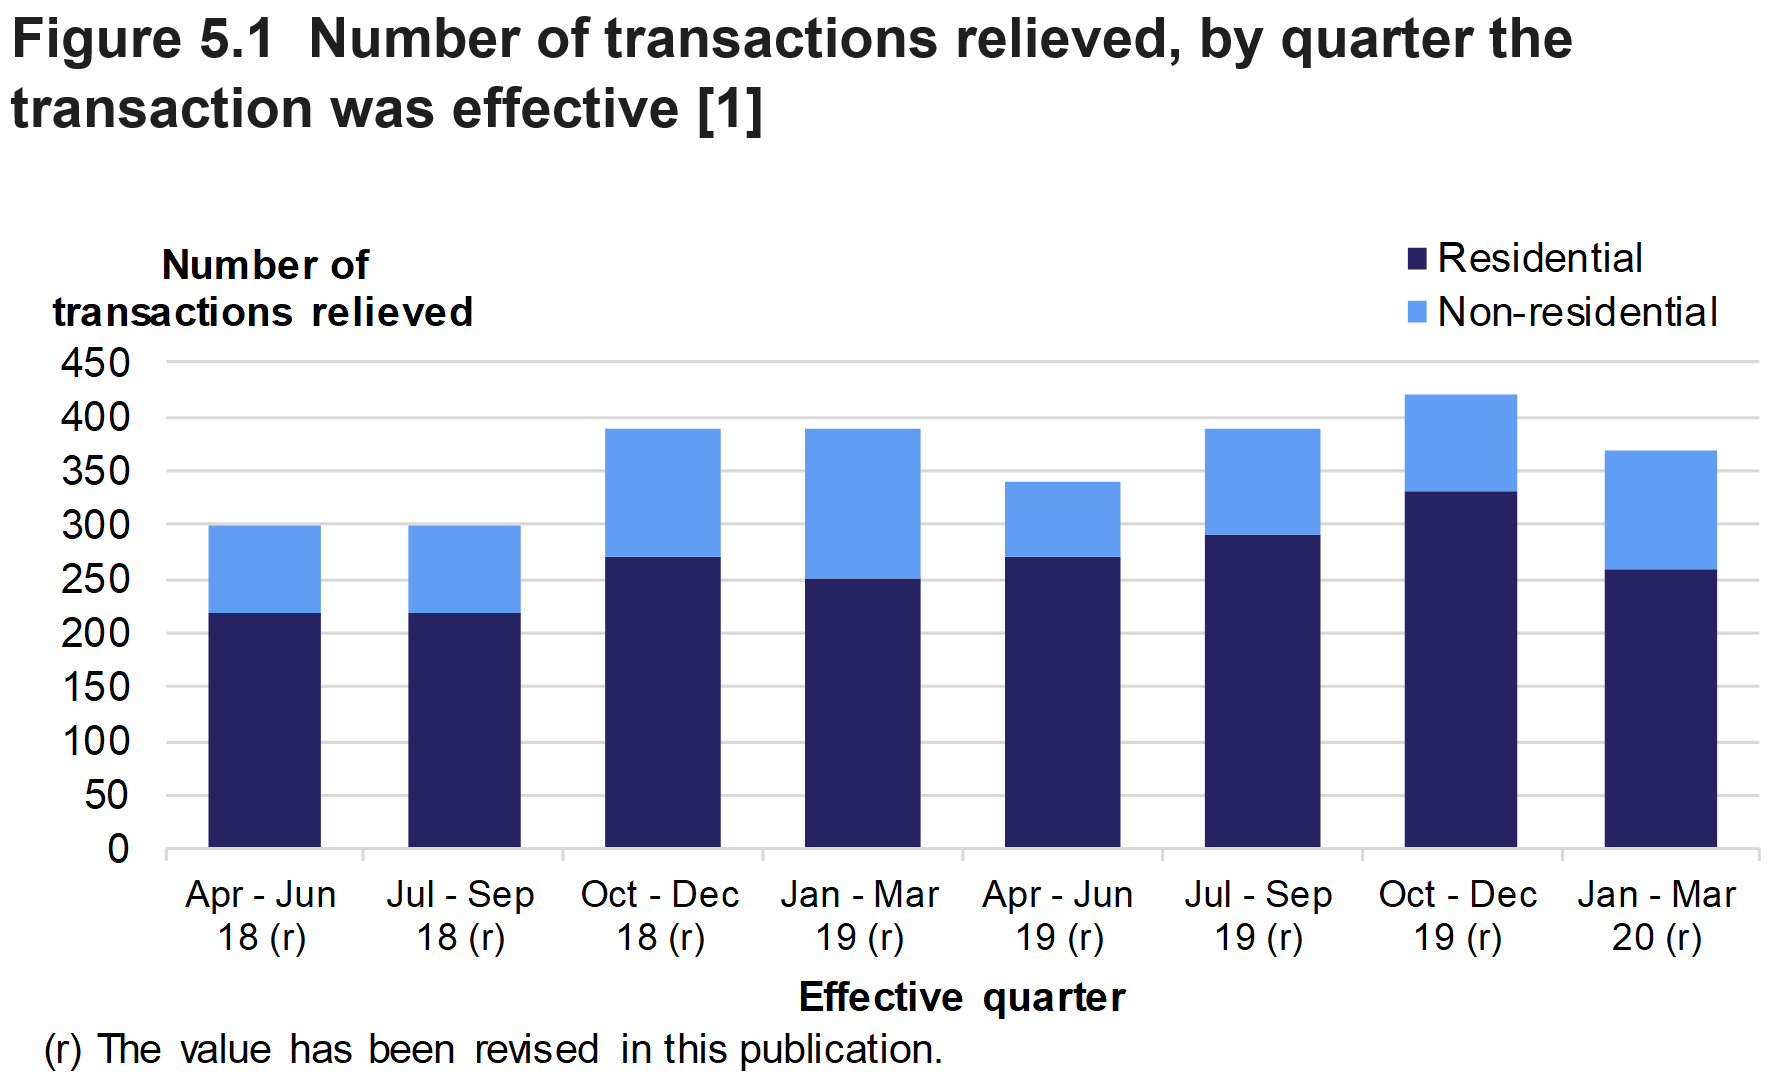 Figure 5.1 shows the number of reliefs applied to residential and non-residential transactions, by type of relief and quarter the transaction was relieved.